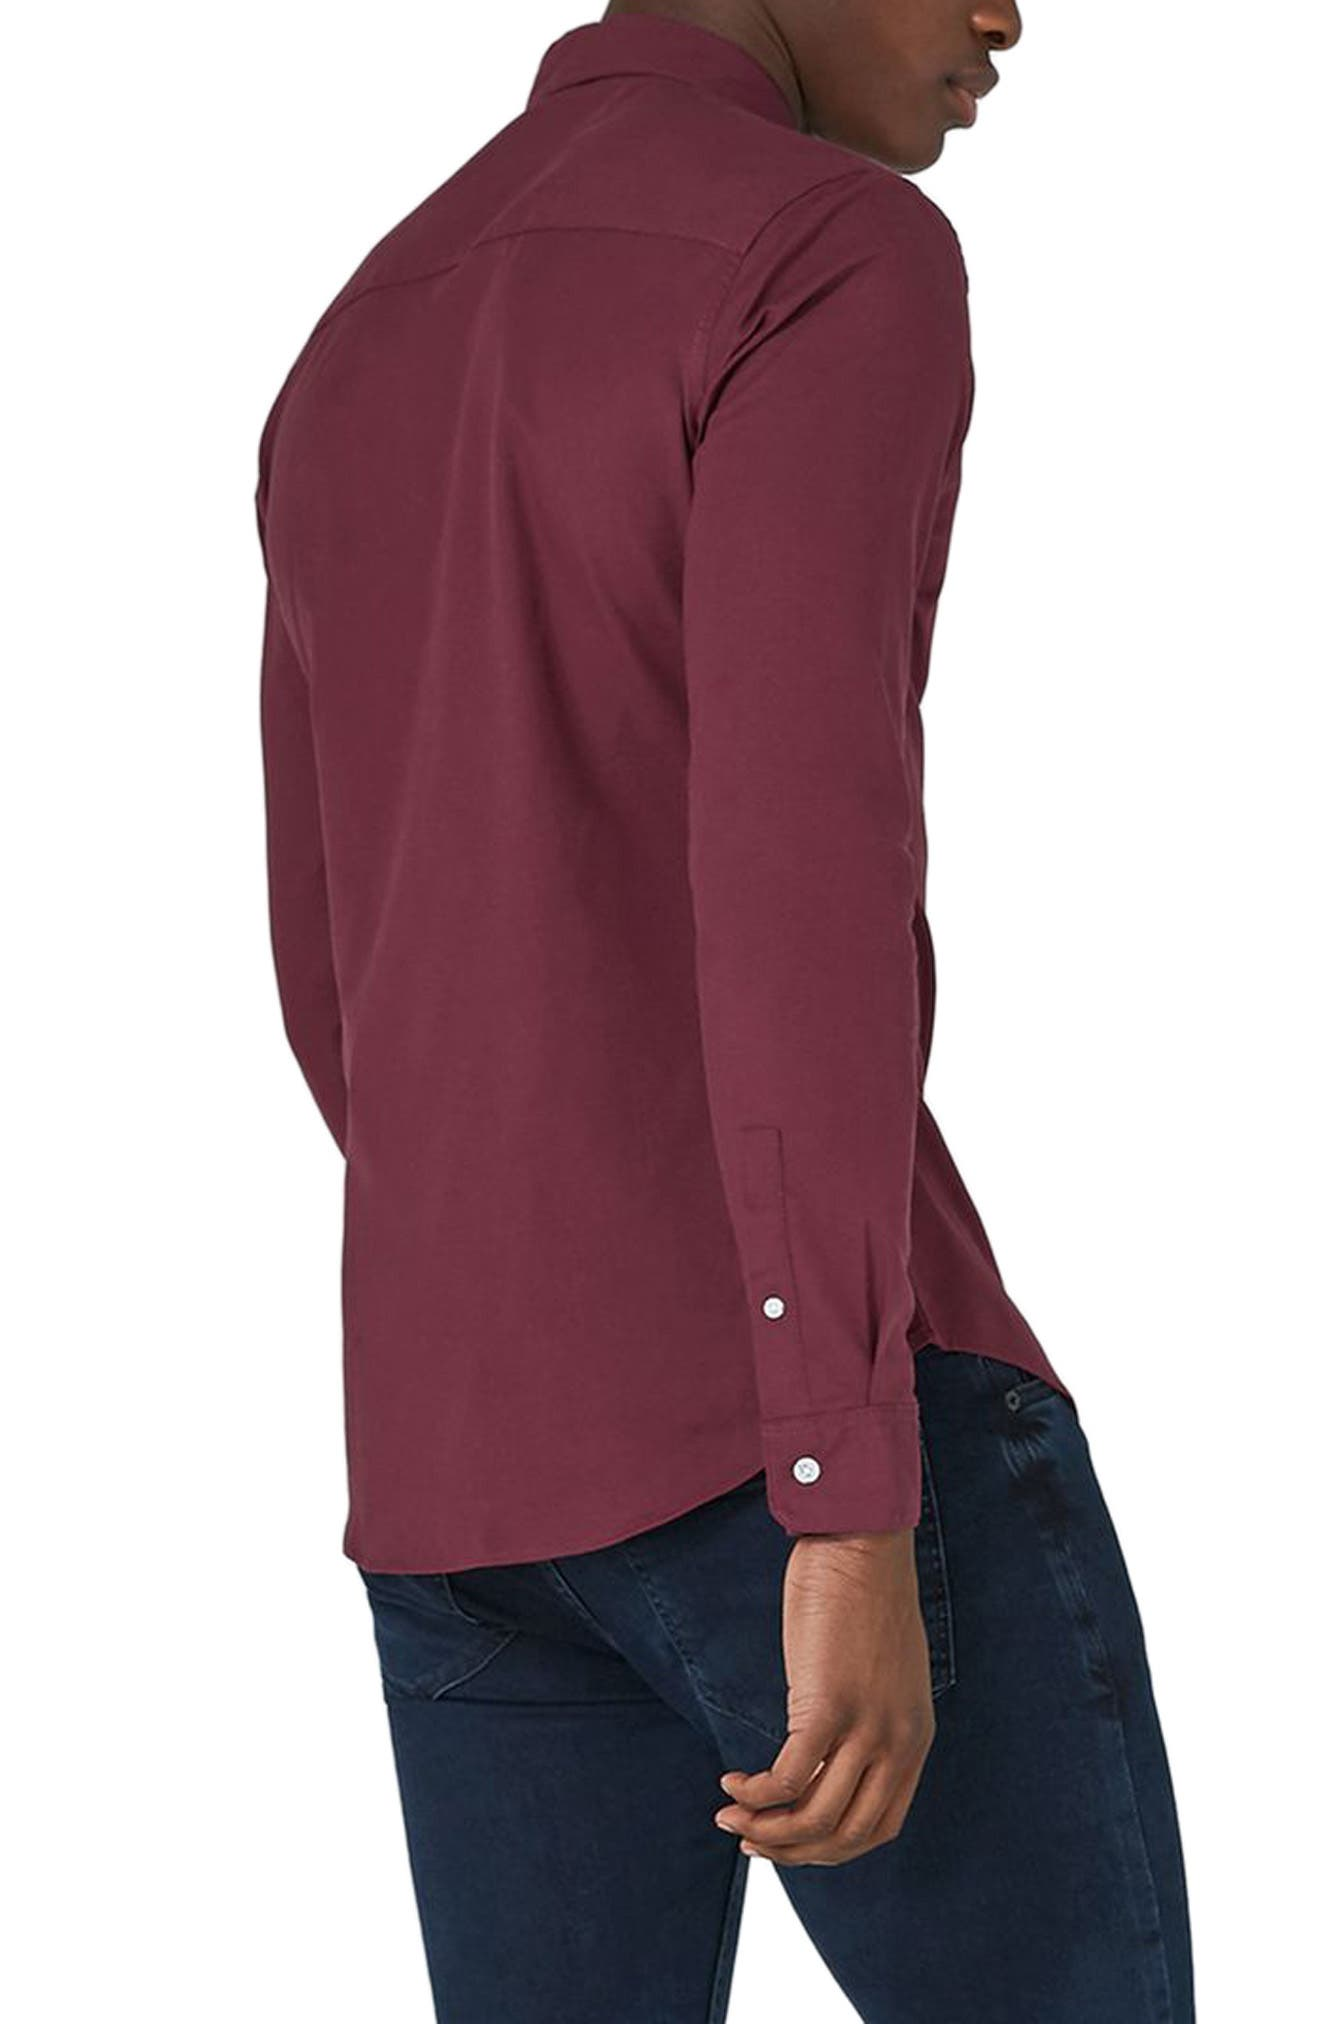 Muscle Fit Oxford Shirt,                             Alternate thumbnail 2, color,                             Burgundy